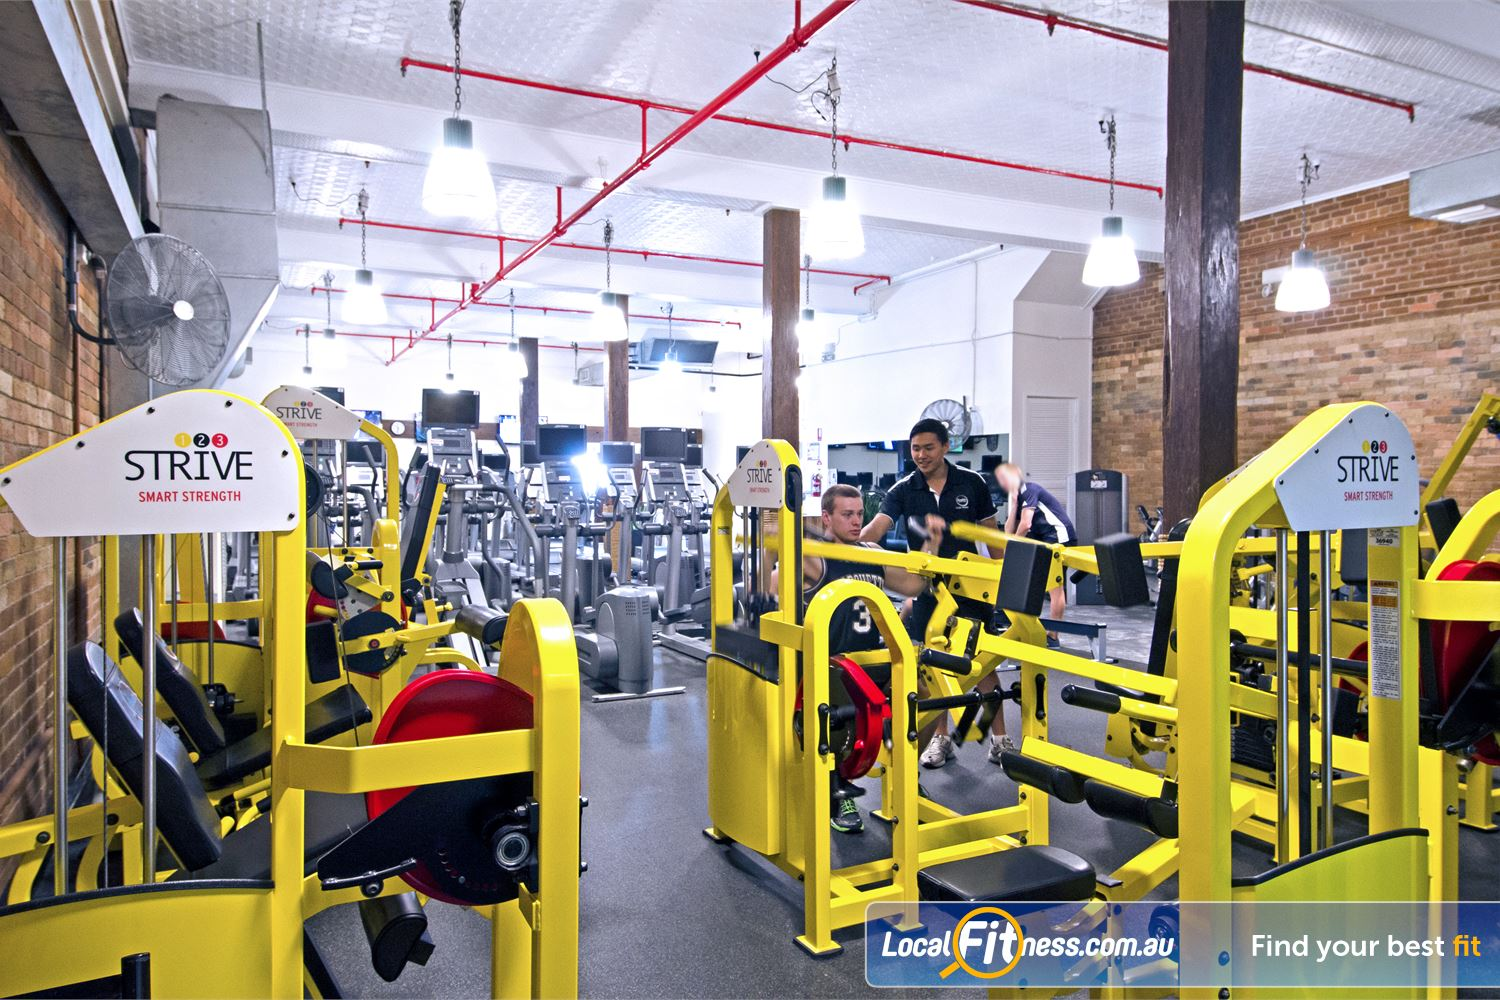 Goodlife Health Clubs Edward St Brisbane Our Edward St Brisbane gym includes the innovative 1-2-3 Strive strength series.